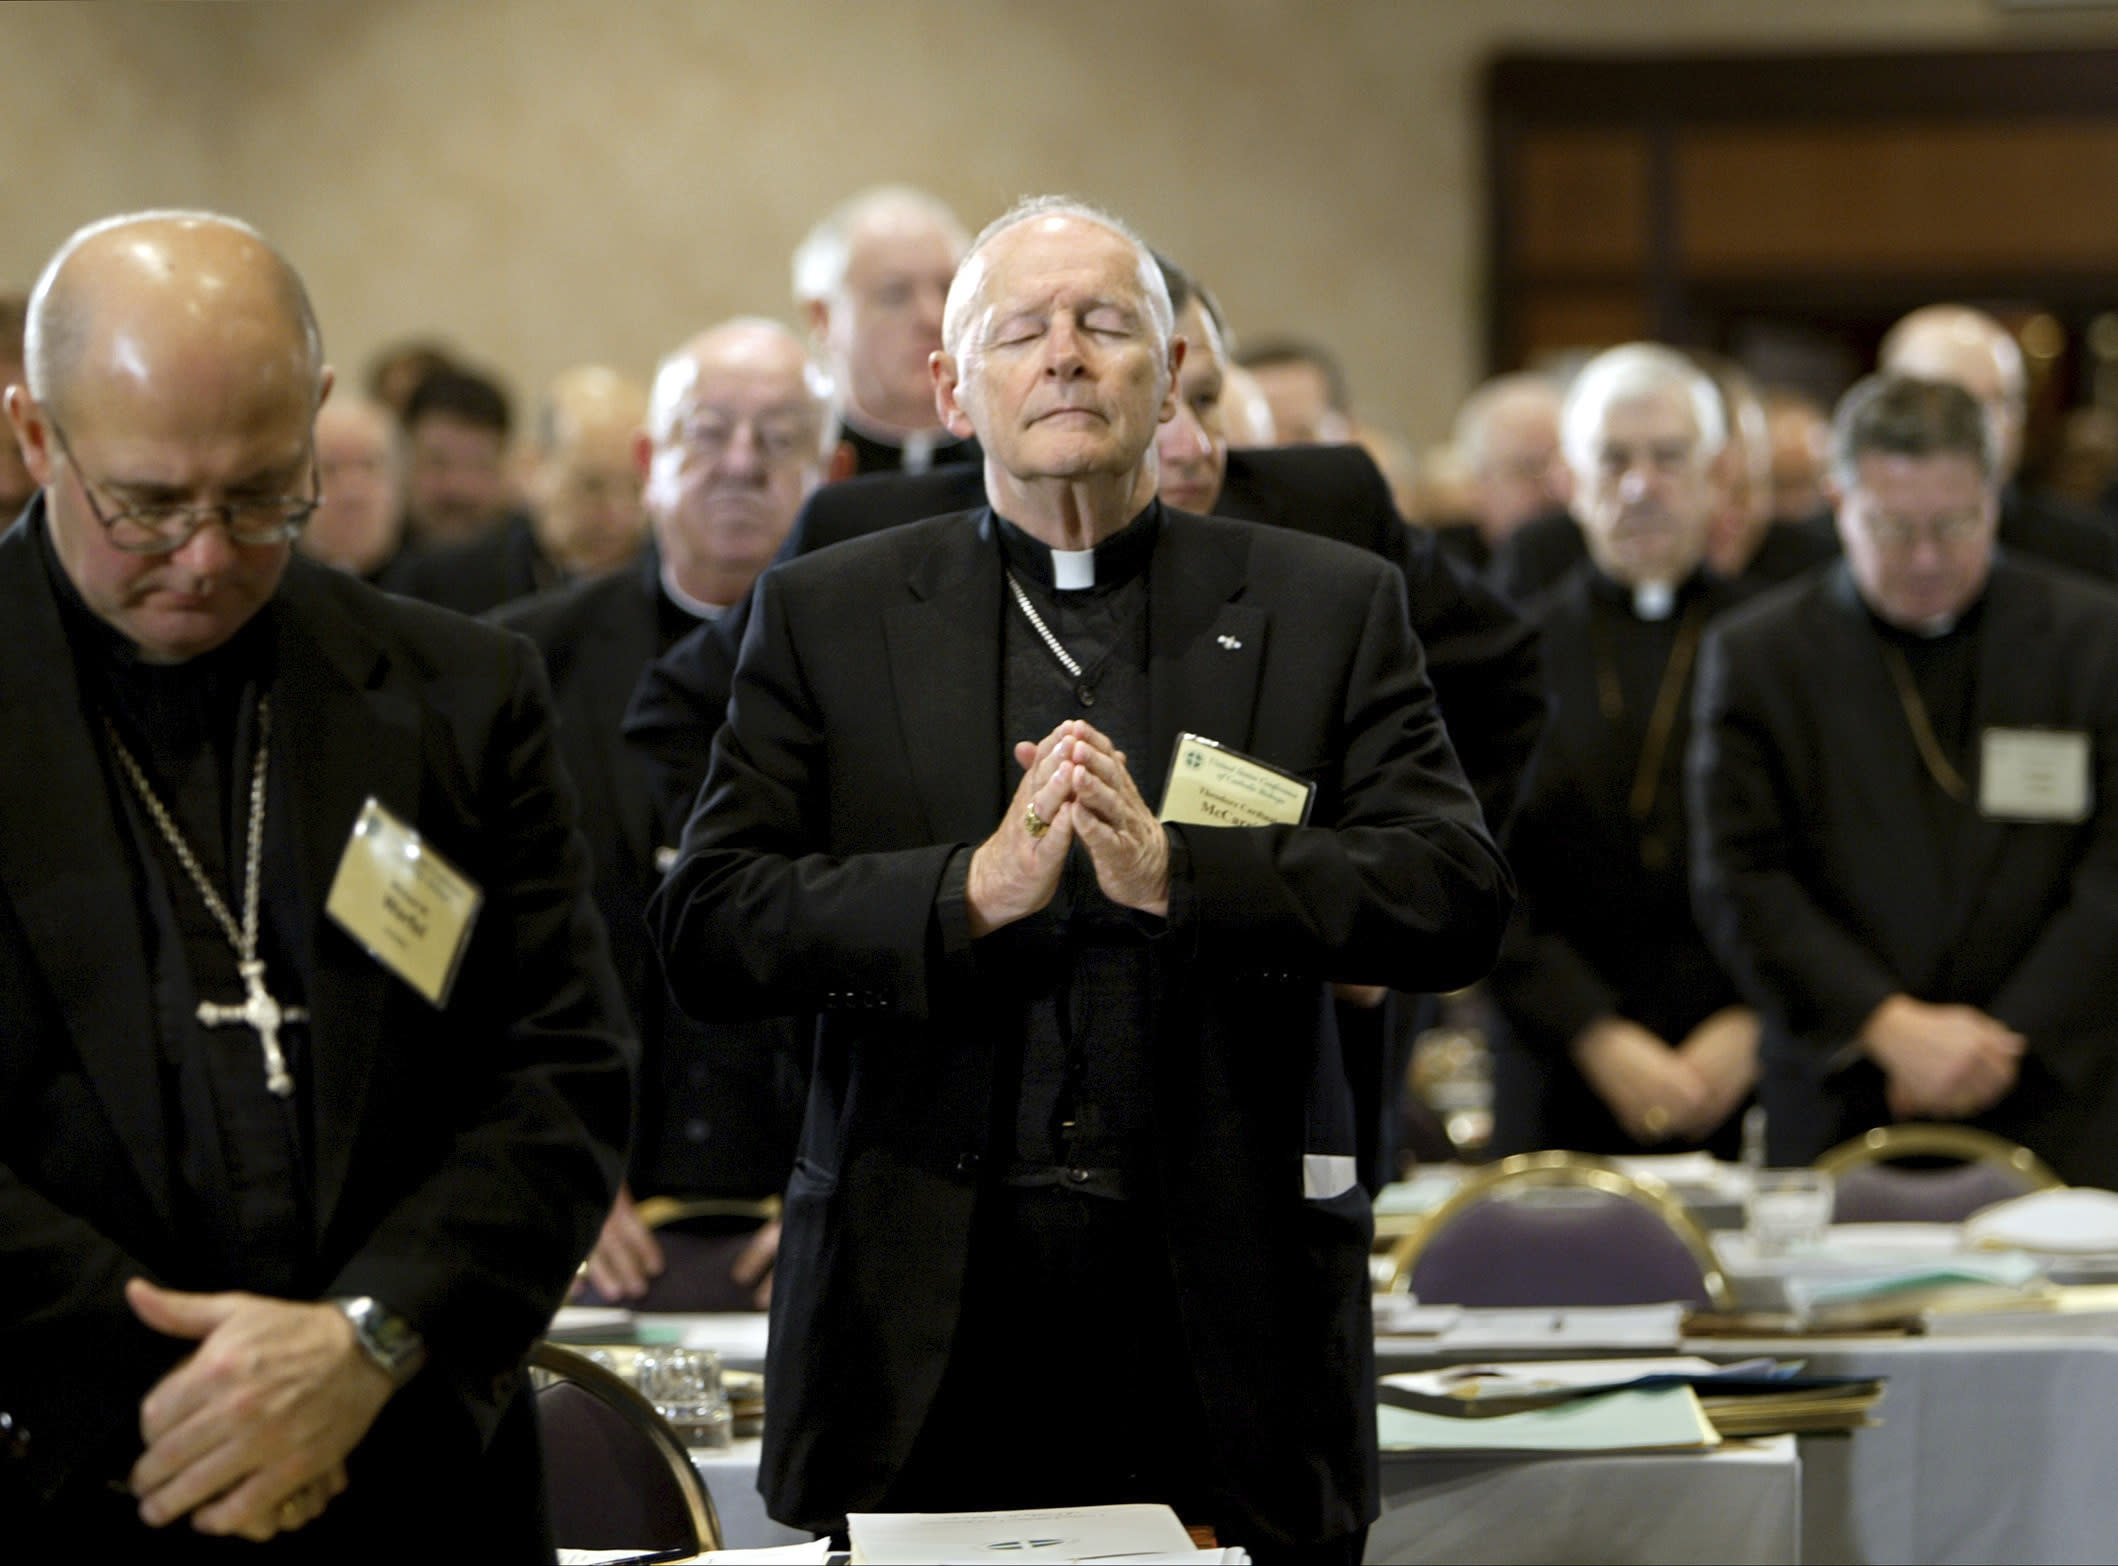 In a moment of turmoil, US Catholic bishops meet virtually